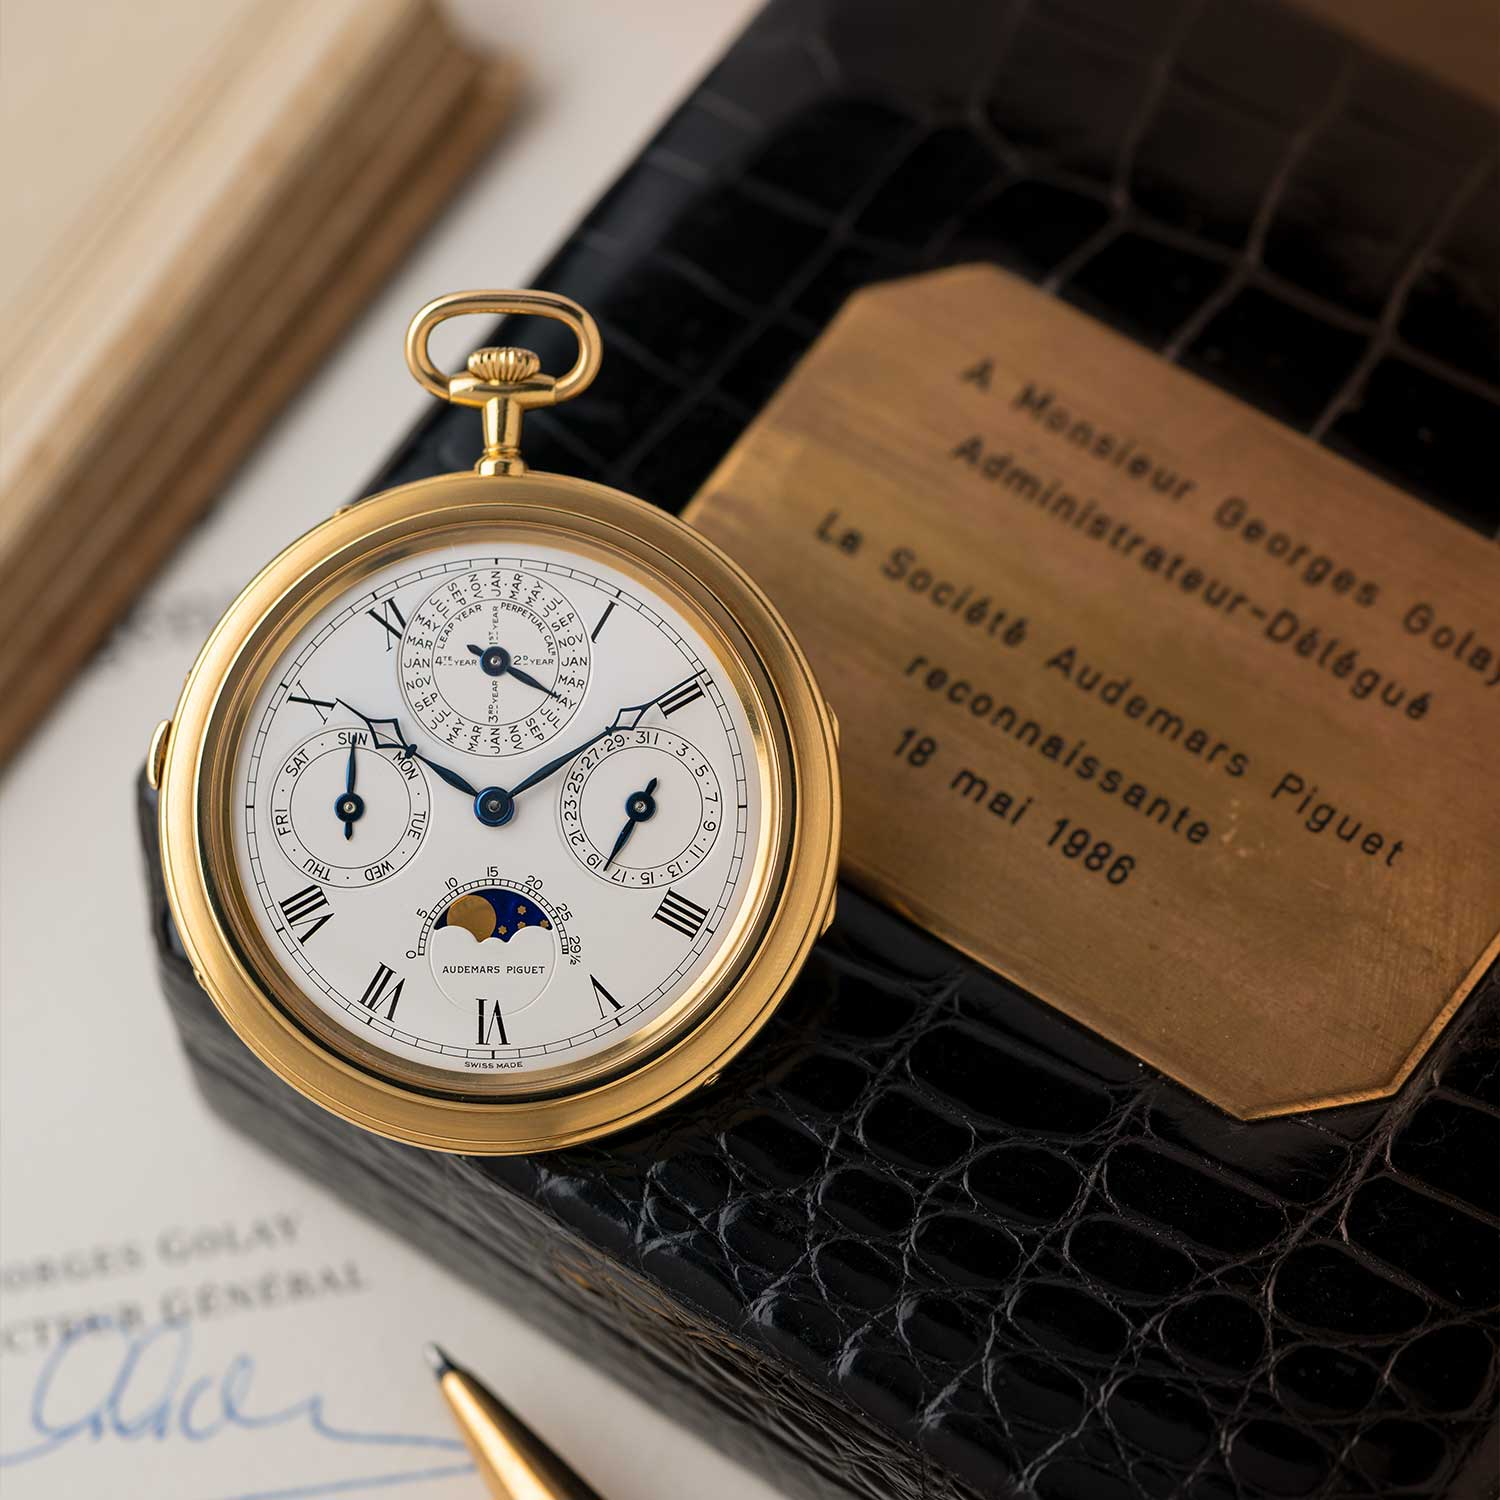 A priceless object of unending beauty, this was the Perpetual Calendar pocket watch that was gifted to Mr Georges Golay in recognition of his 25 years of long service to the brand; the watch seen here is presently part of the Pygmalion Gallery's private collection (Image: Photo and watch, property of Pygmalion Gallery)